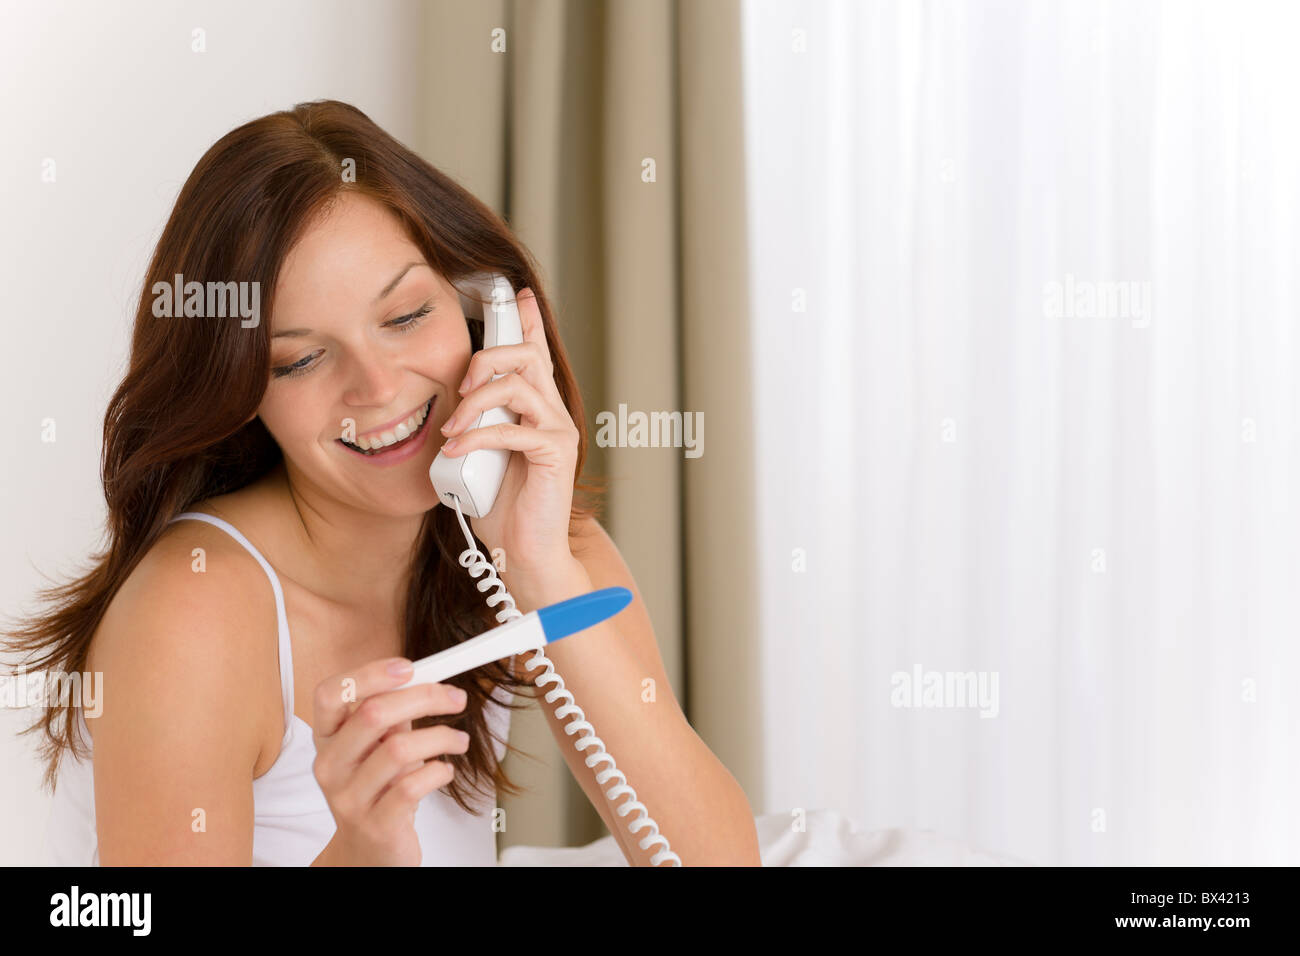 Pregnancy test - happy woman on phone, positive result - Stock Image